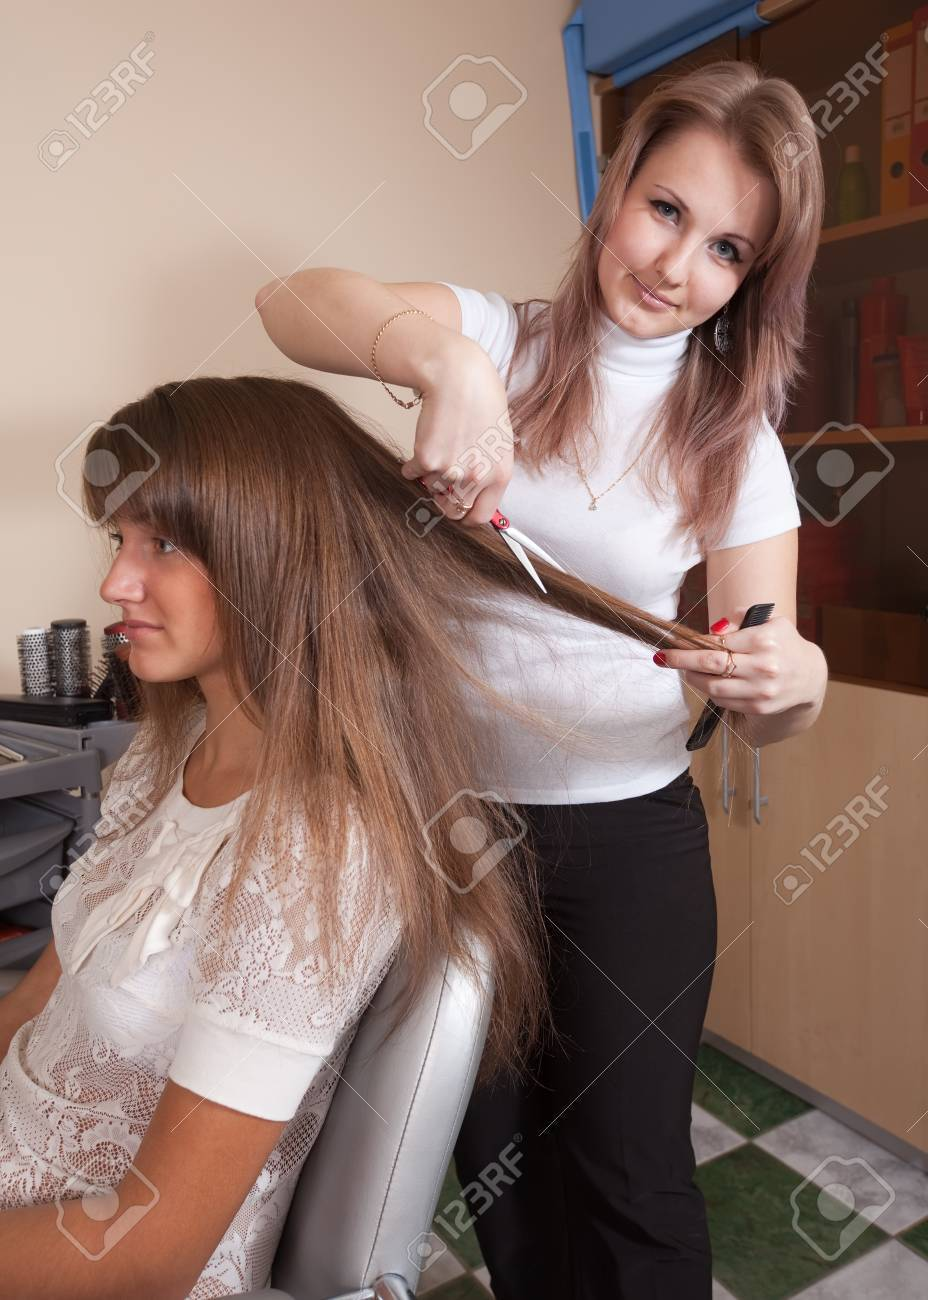 Female hairdresser working with long-haired girl Stock Photo - 10812578